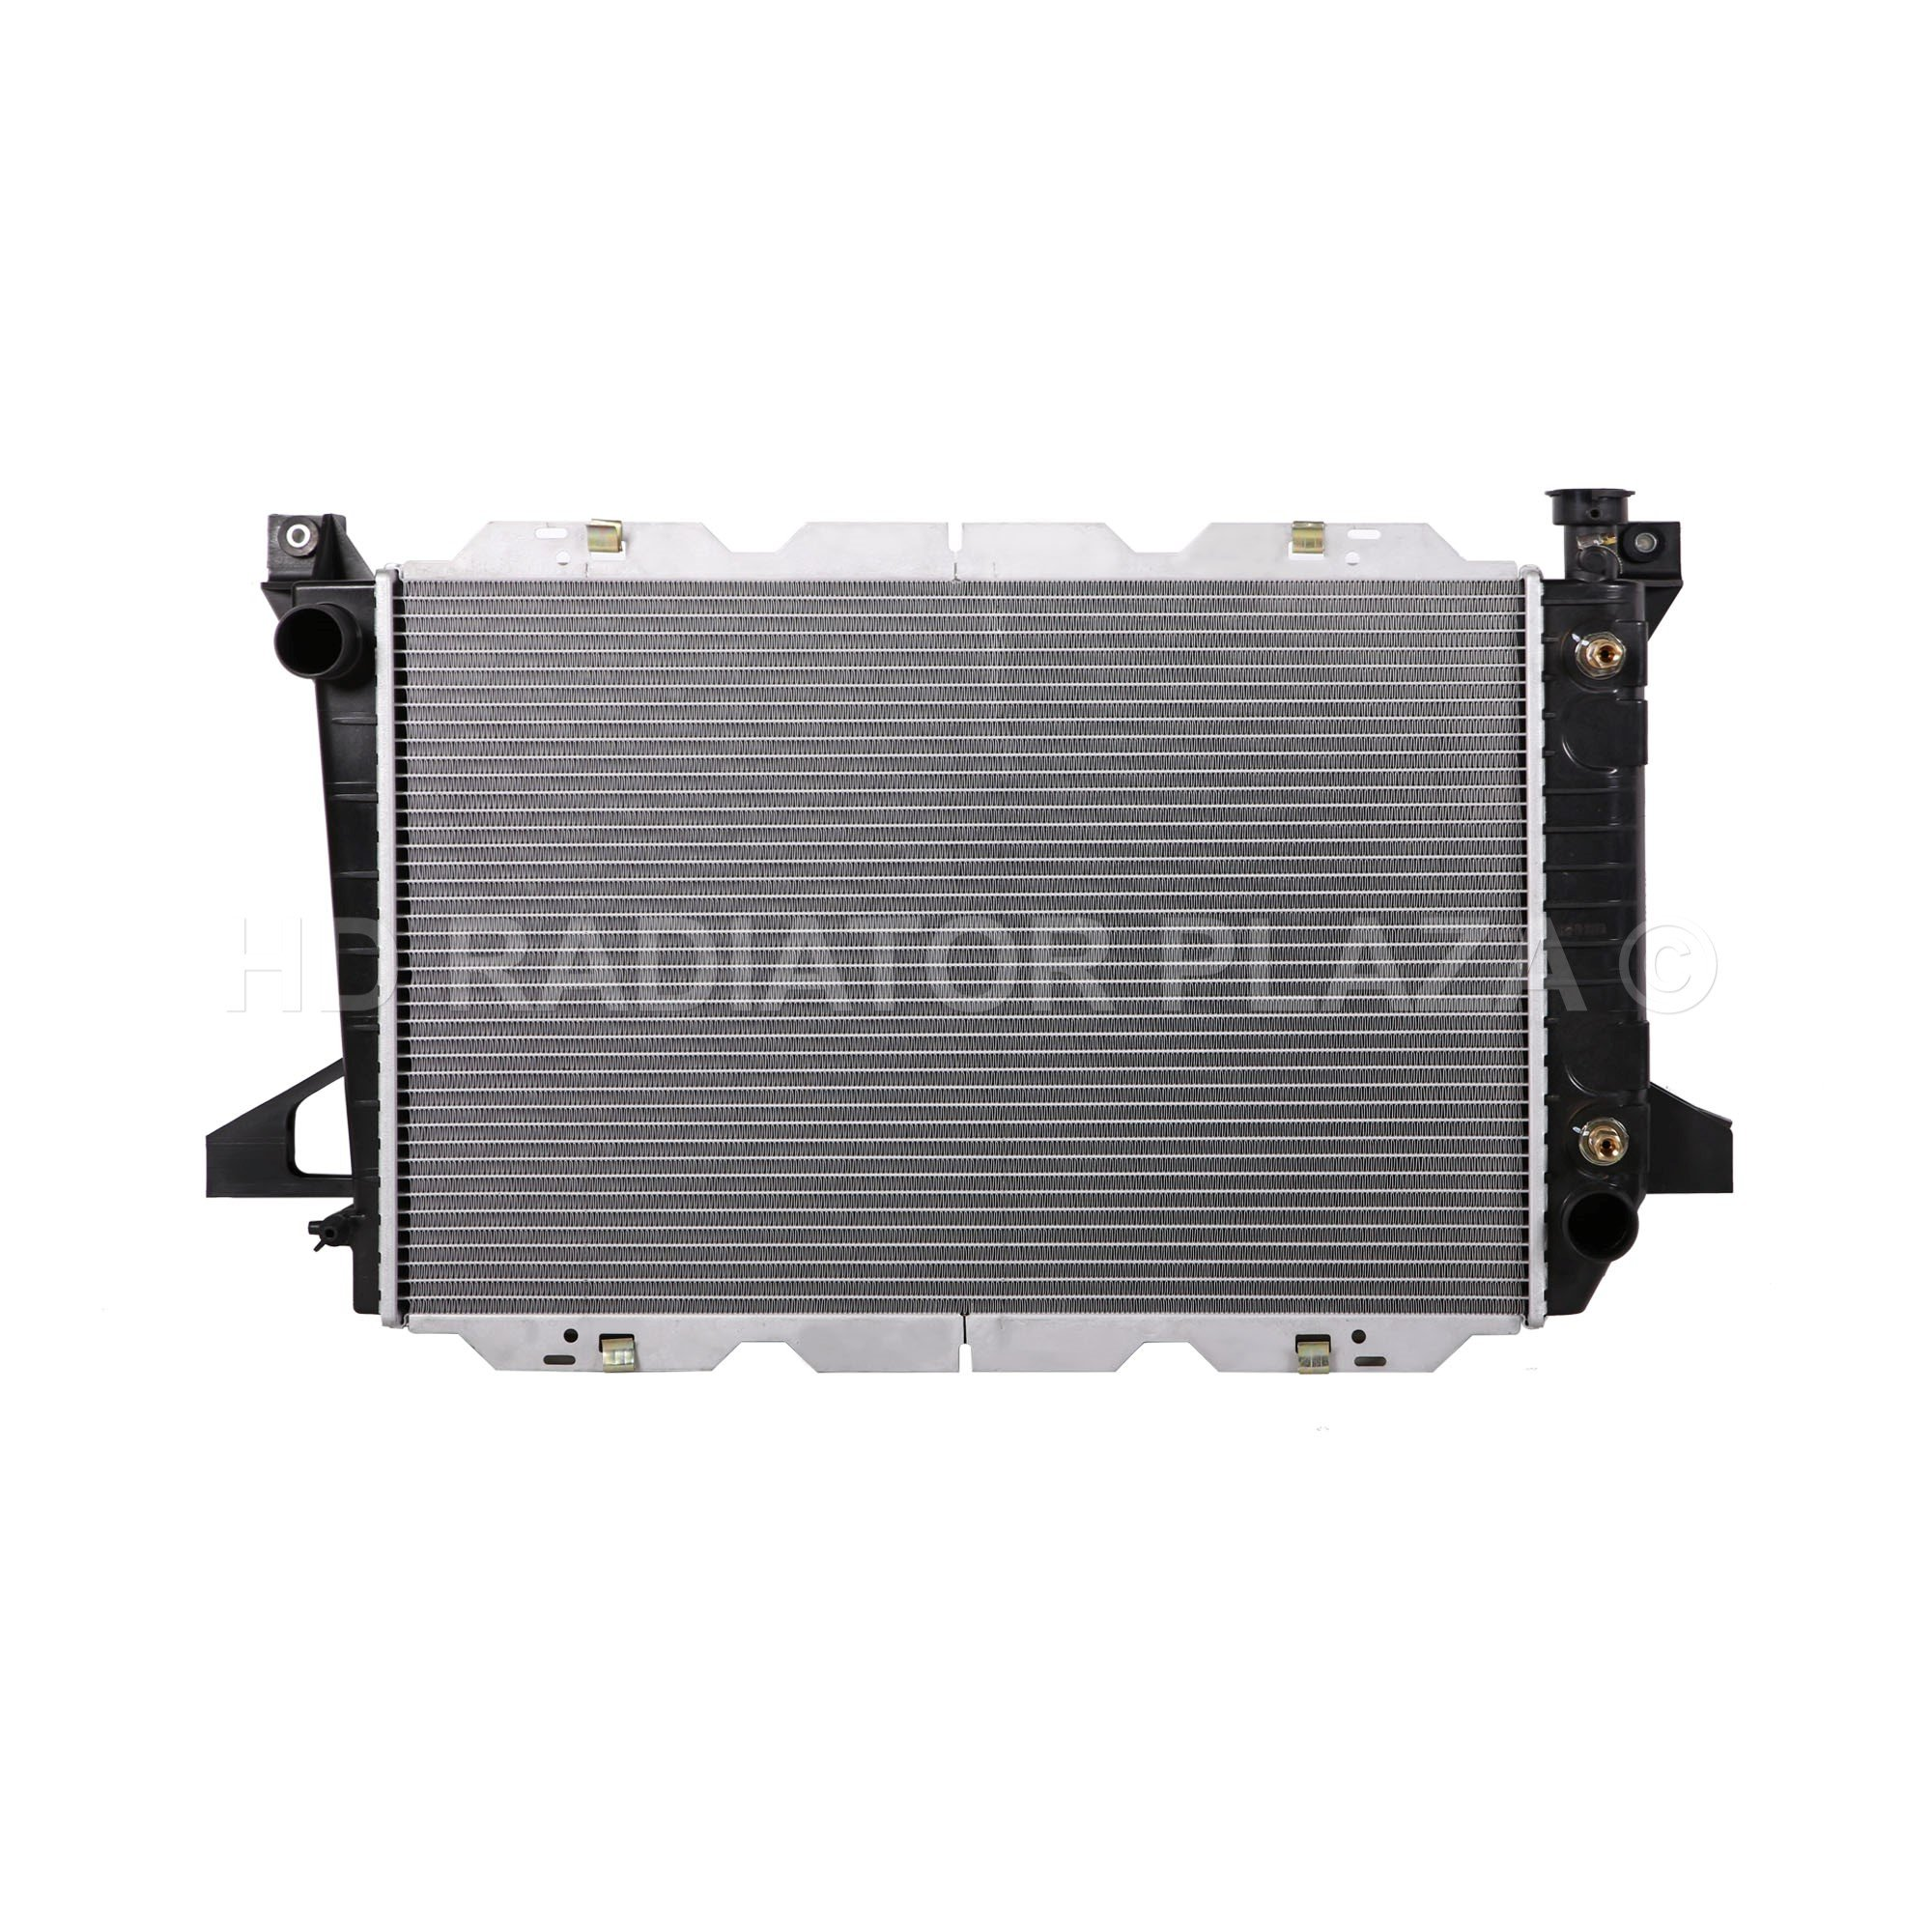 Radiator for 85-97 Ford F150, F250, F350, Bronco